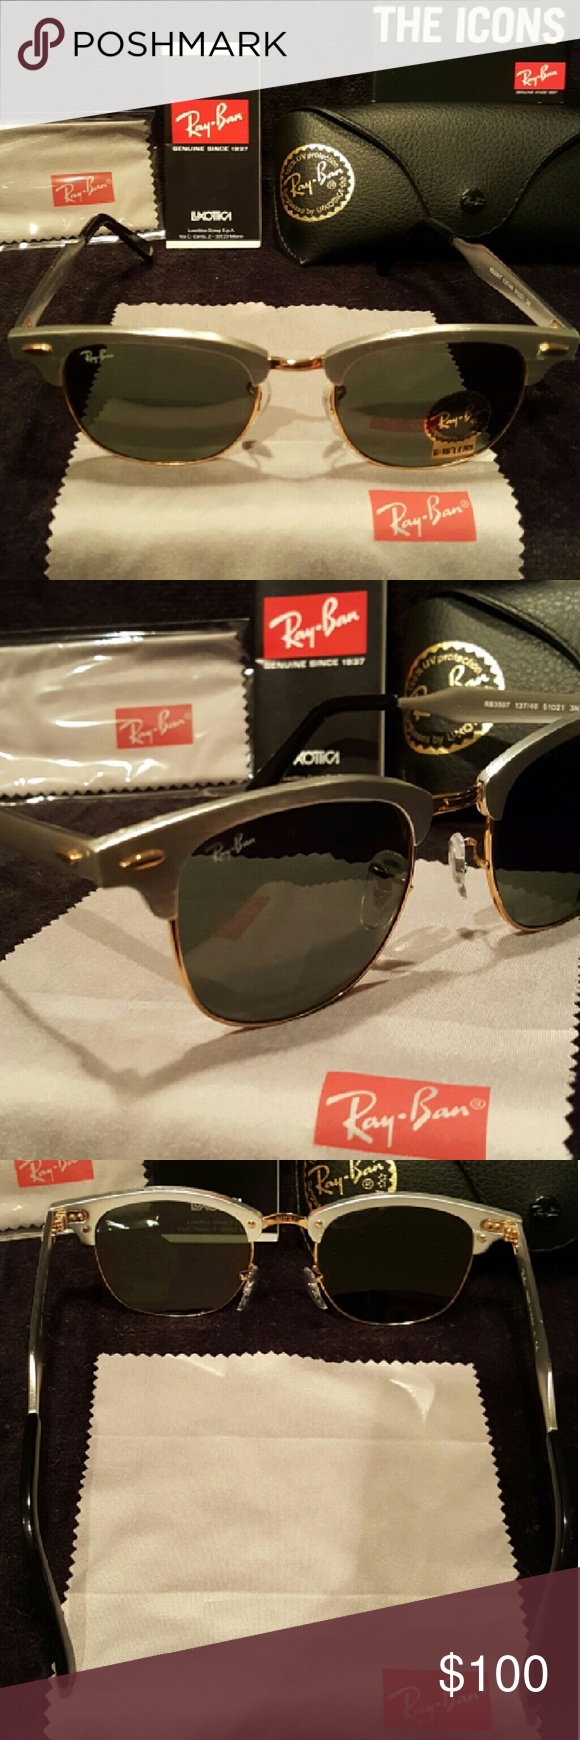 21519ead5500e ... new zealand aluminum metal ray ban clubmaster sunglasses aluminum  brushed silver clubmaster sunglasses style rb3507 137